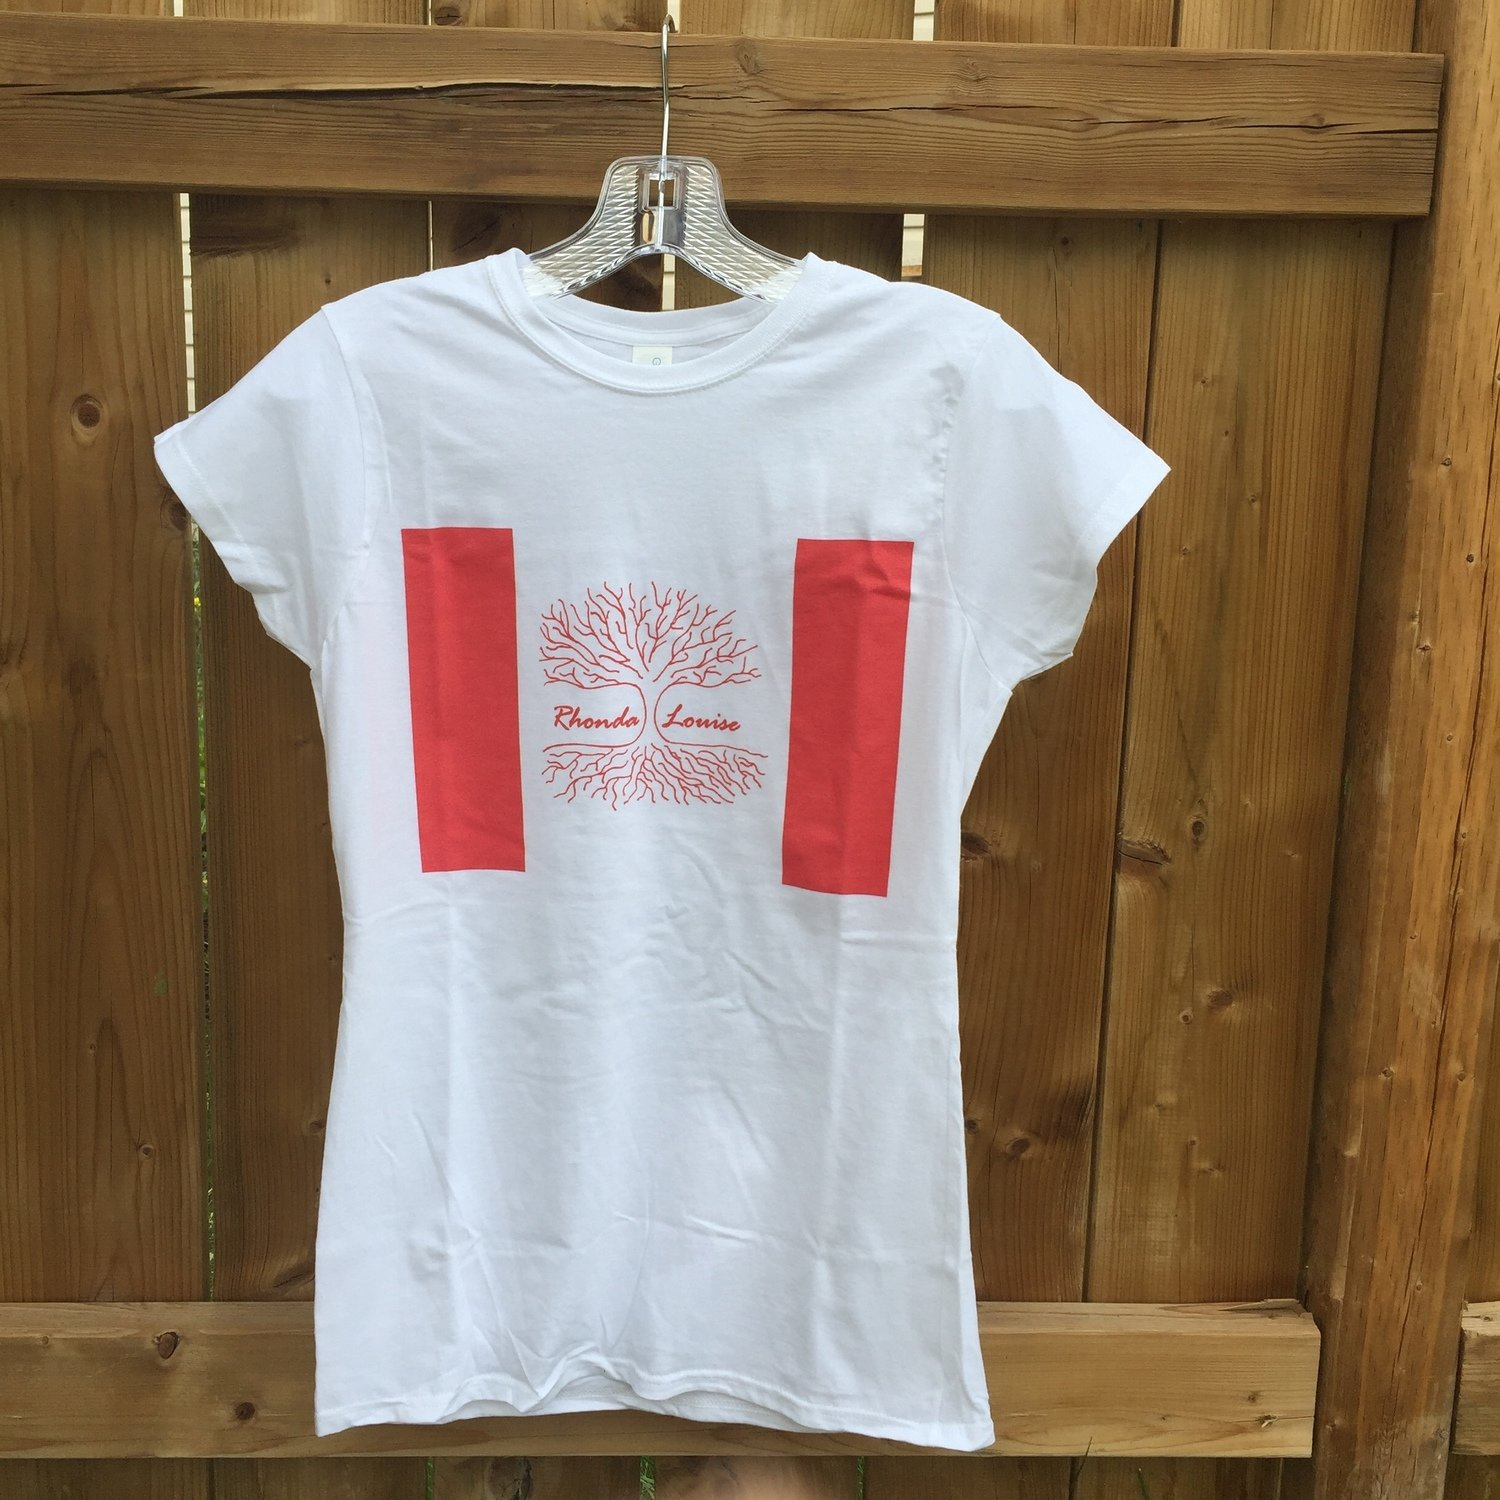 Rhonda Louise Logo T-Shirt - Women's - Canada (limited edition)